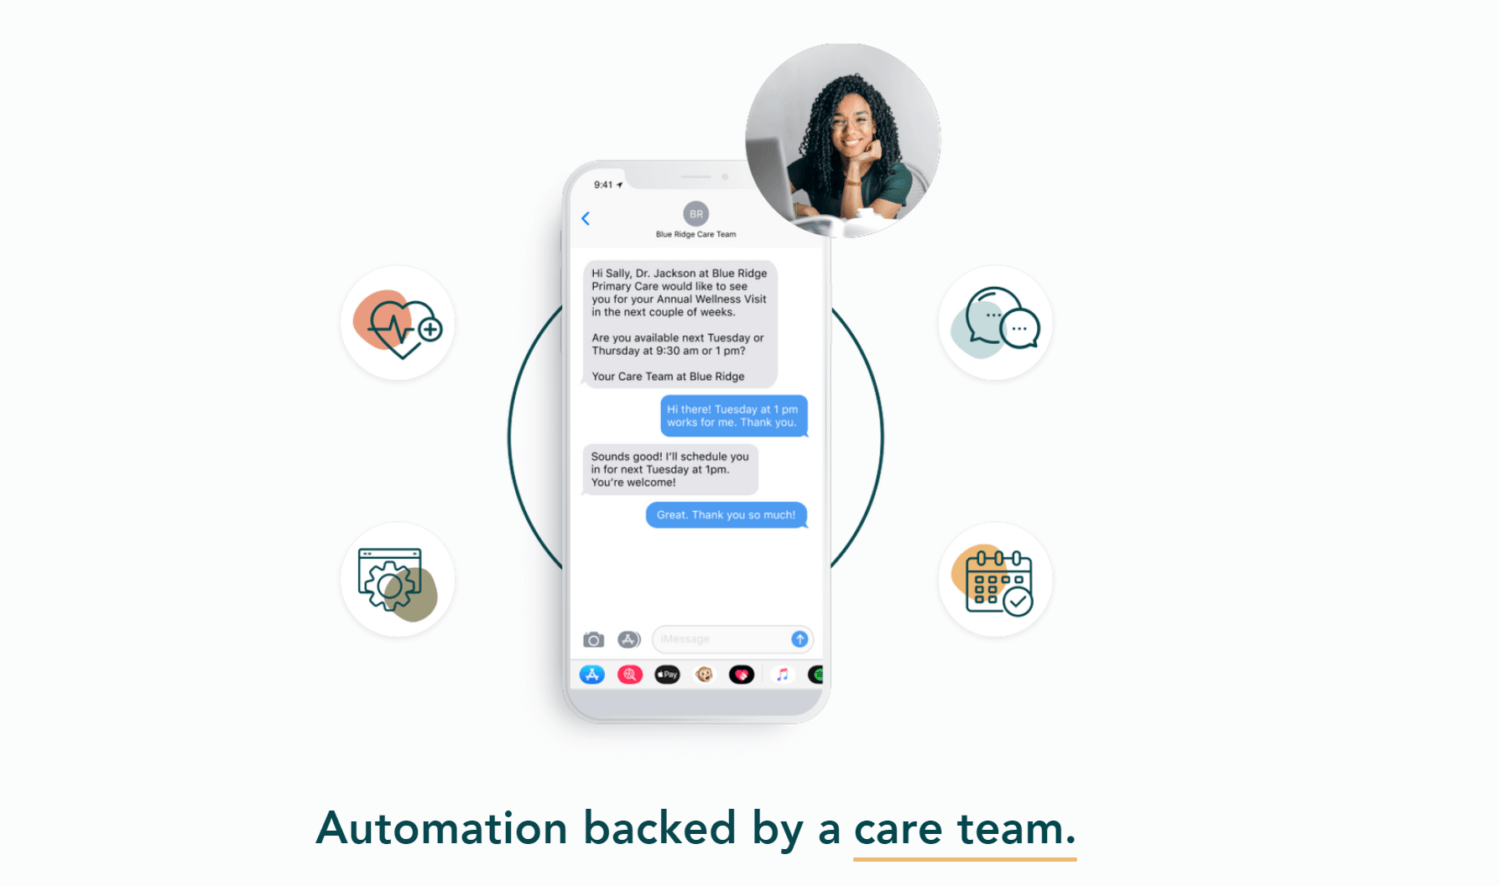 Pair Team Emerges Out of Stealth with $2.7M to Automate Primary Care Operations